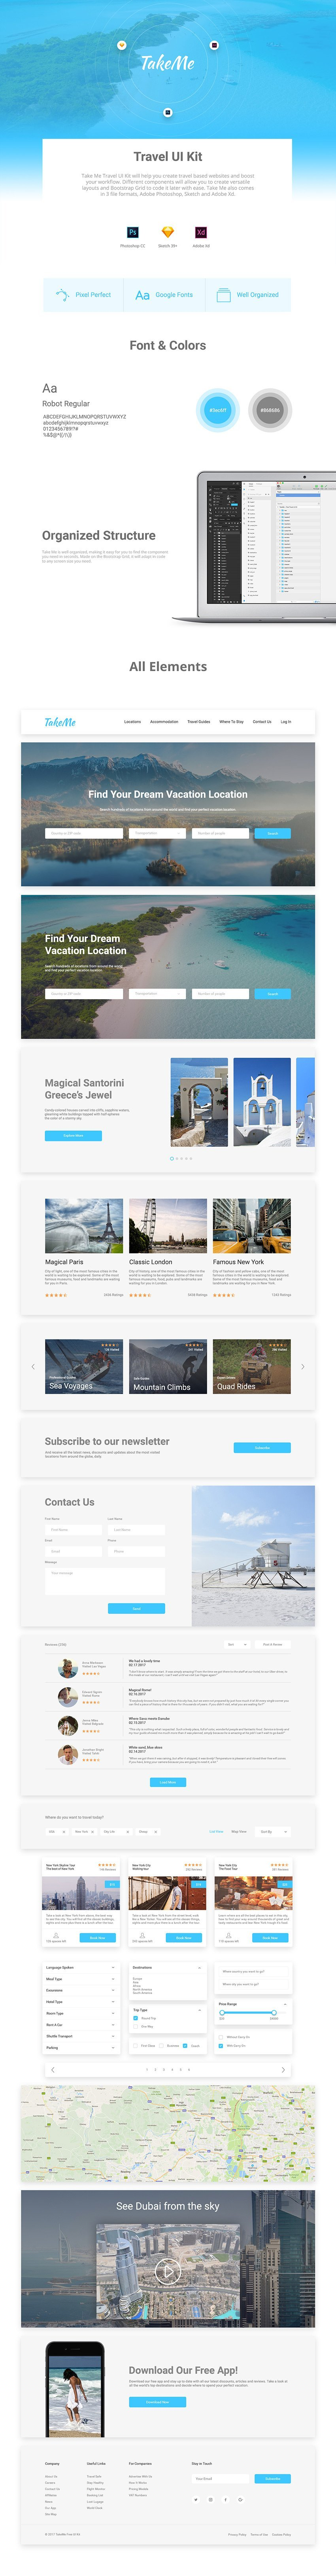 Take Me Free Web Template for Photoshop, Sketchapp and Adobe Xd